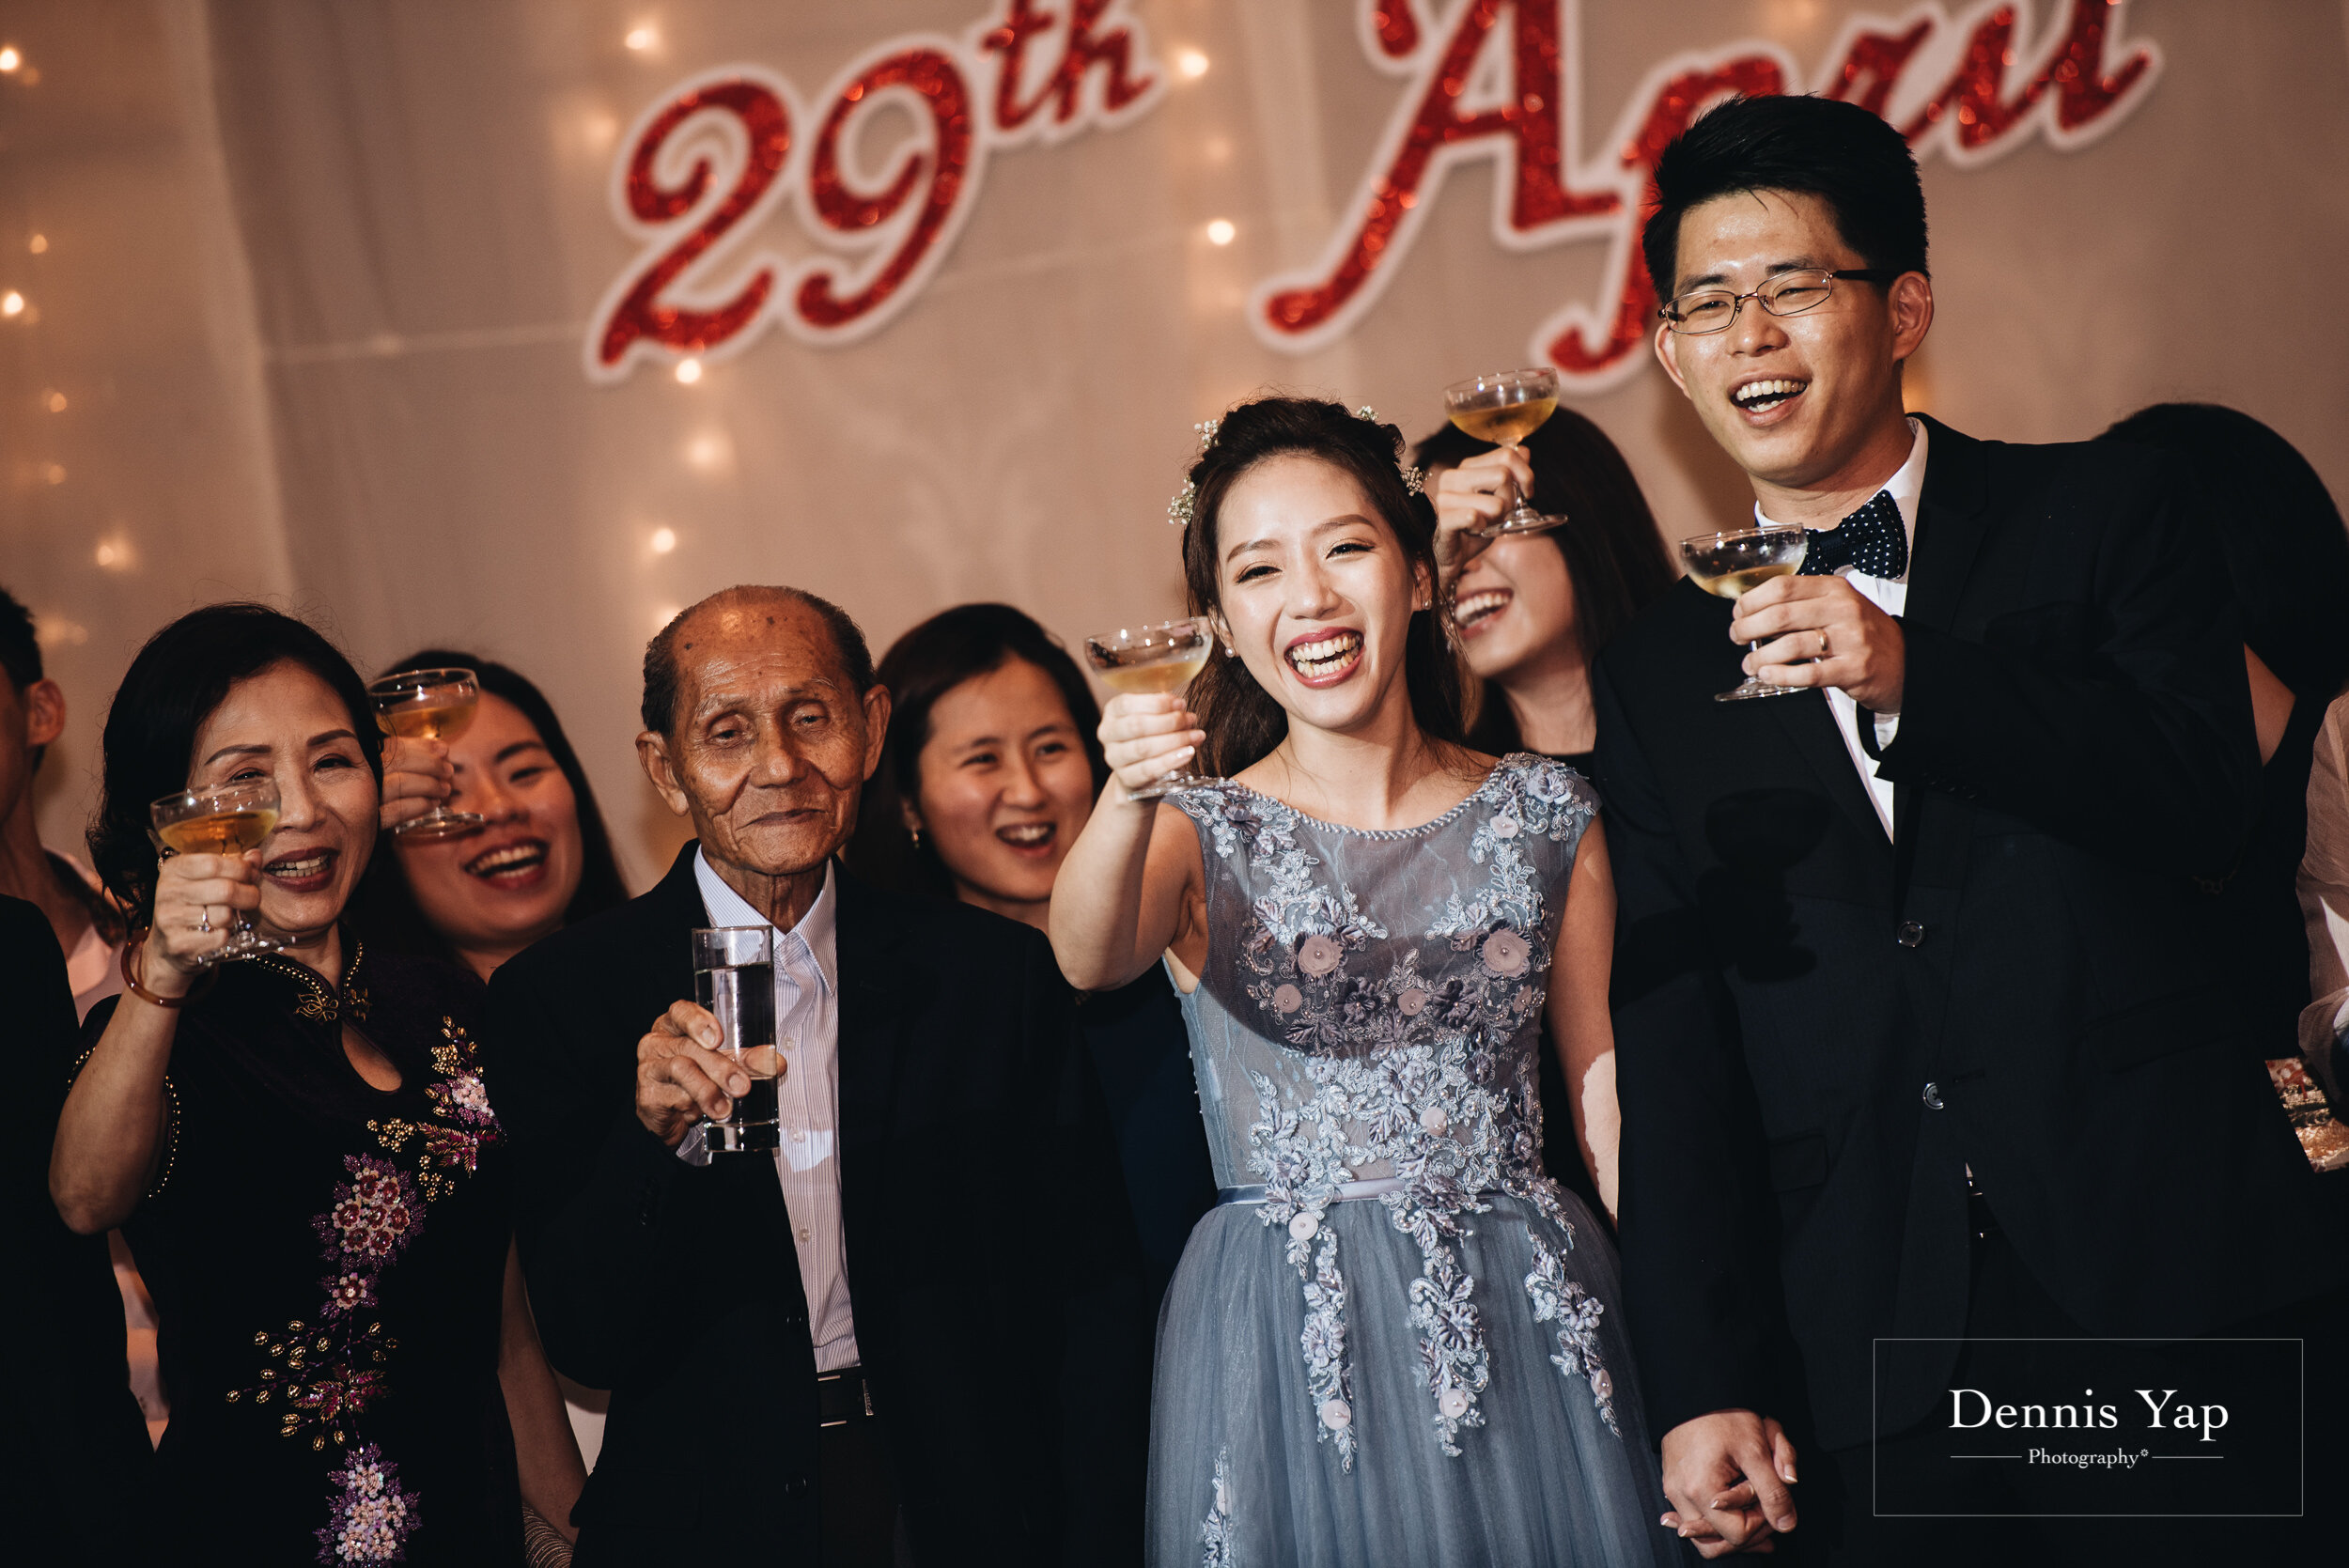 louis su yan wedding dinner dorsett grand subang dennis yap photography-122.jpg